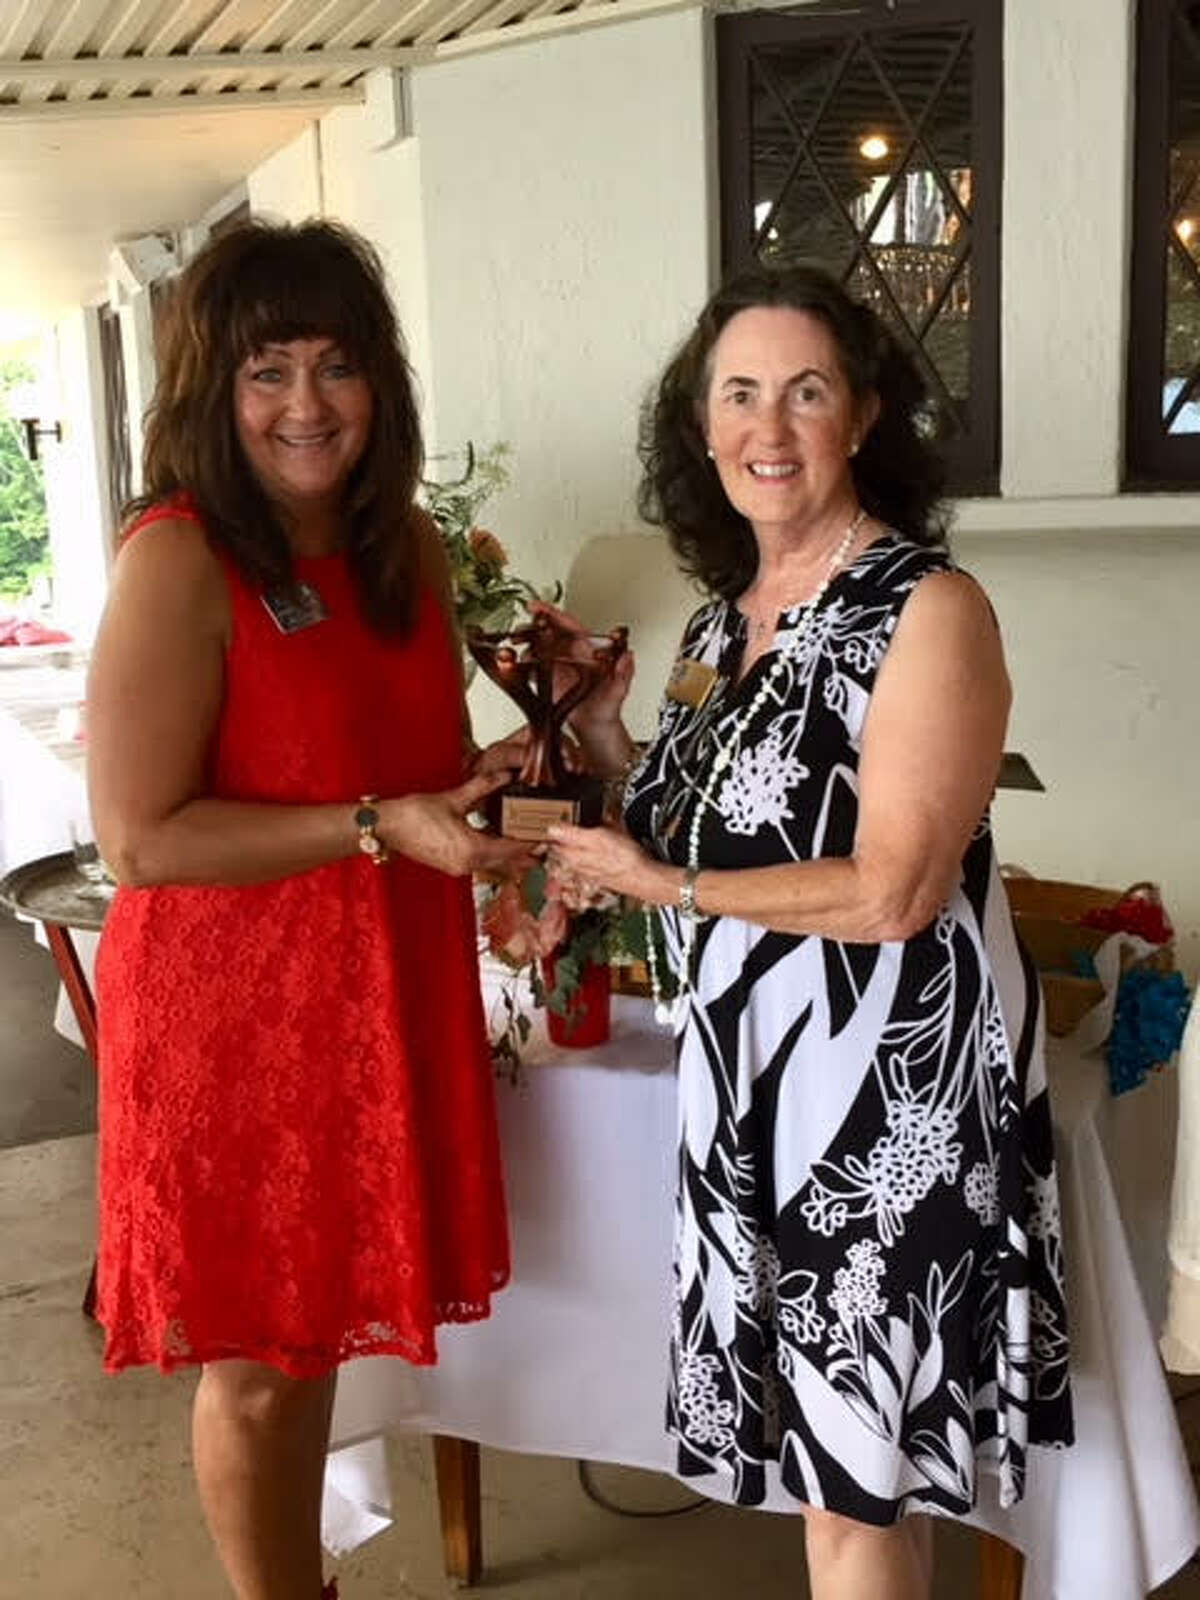 More than 160 people attended the 2018 Ladies of the Lake Luncheon was held on June 18 at the Lake George Club in Diamond Point, the Wiawaka Center for Women's major fundraiser. Over $16,000 was raised. The Mary Fuller Women Helping Women Award went to Soroptimist of the Adirondacks Service Committee.